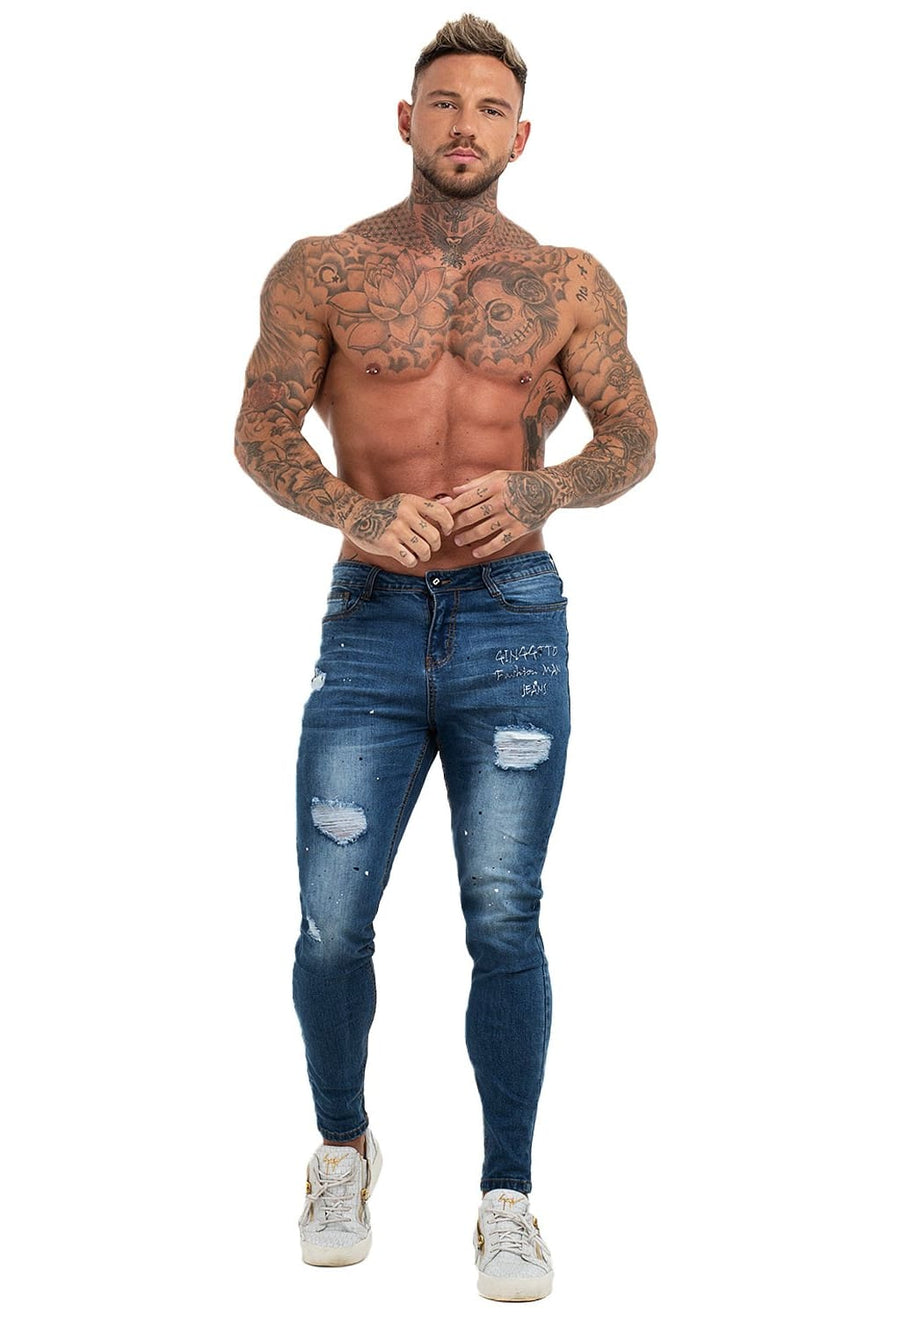 GINGTTO Mens Skinny Jeans Blue Ripped Designer Jeans For Men 2019 zm72 - Blue / 32 - Skinny Jeans